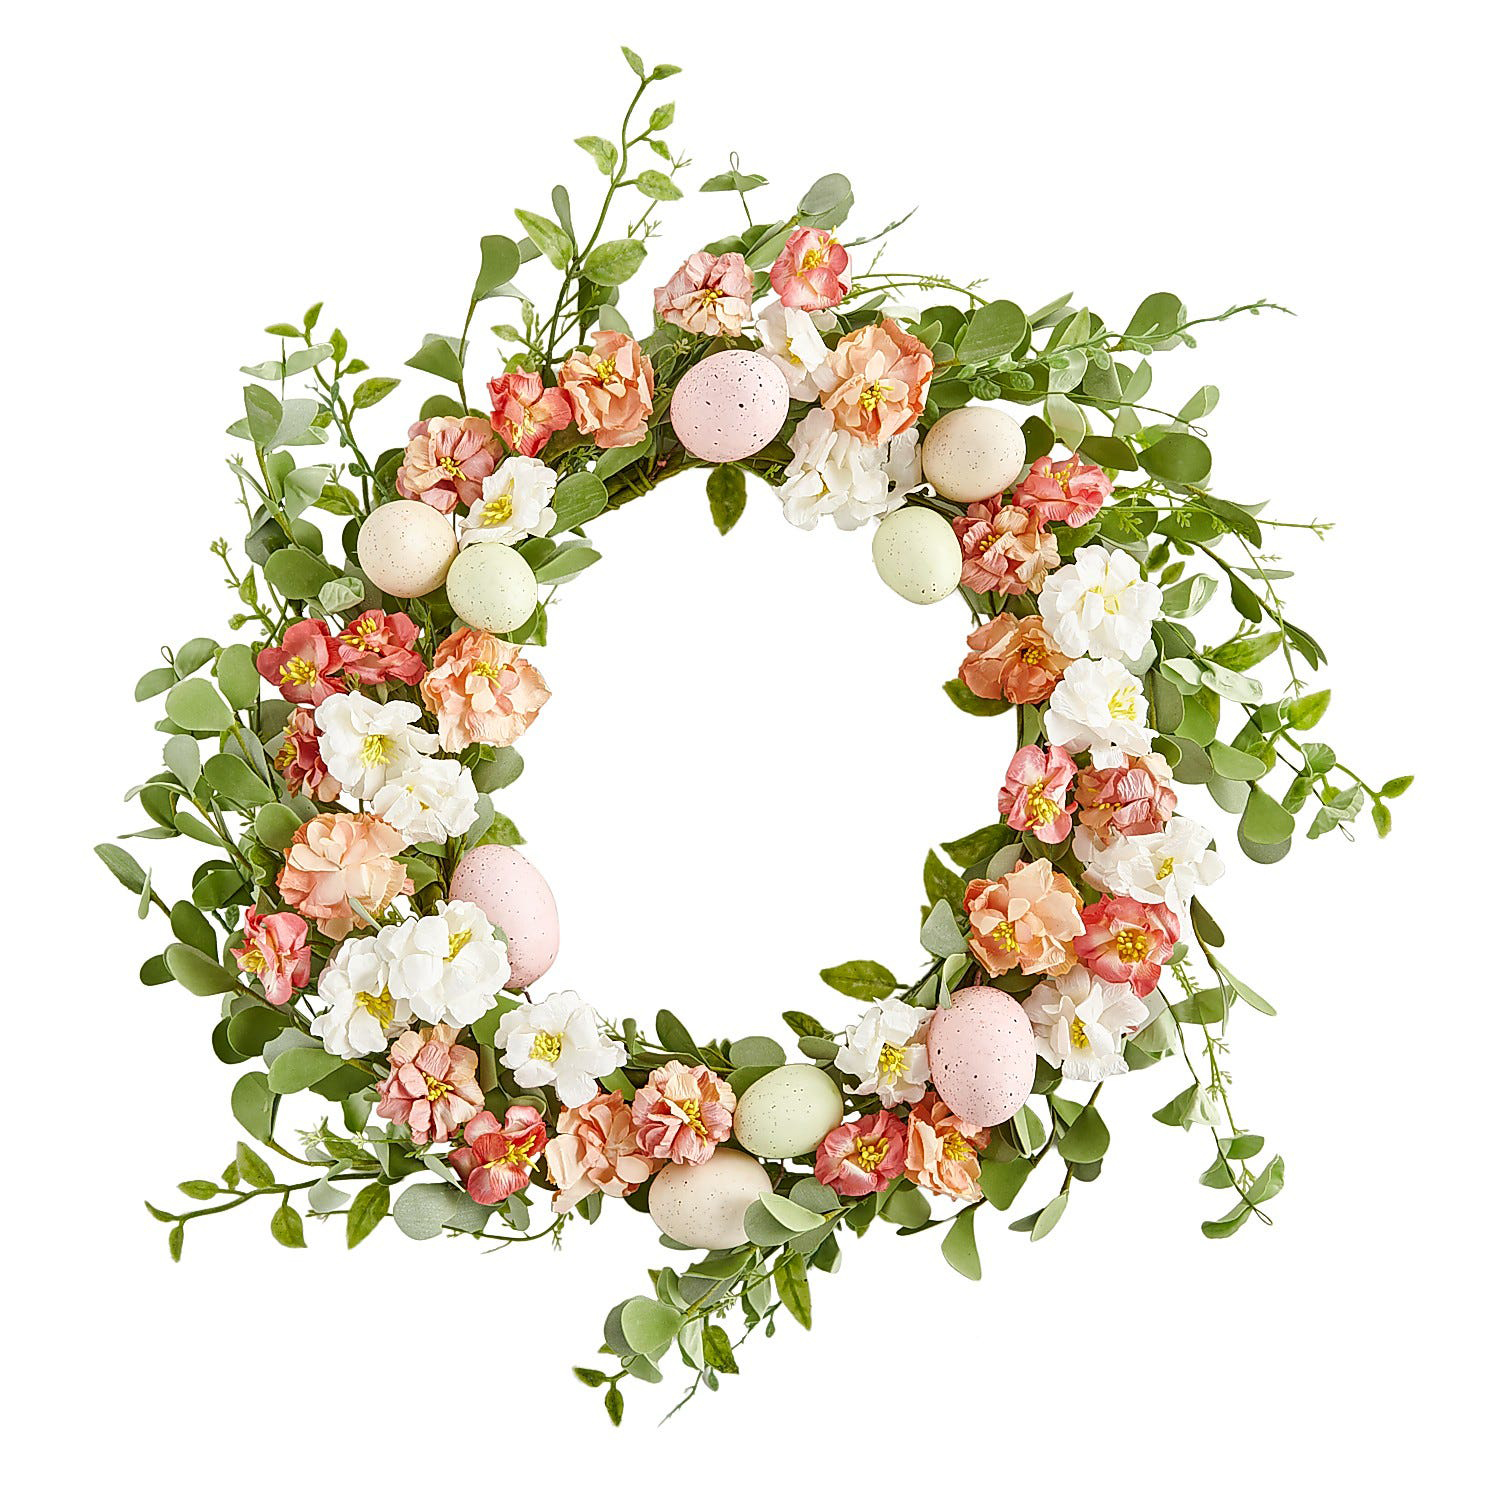 Coral Faux Floral & Eucalyptus Wreath with Eggs